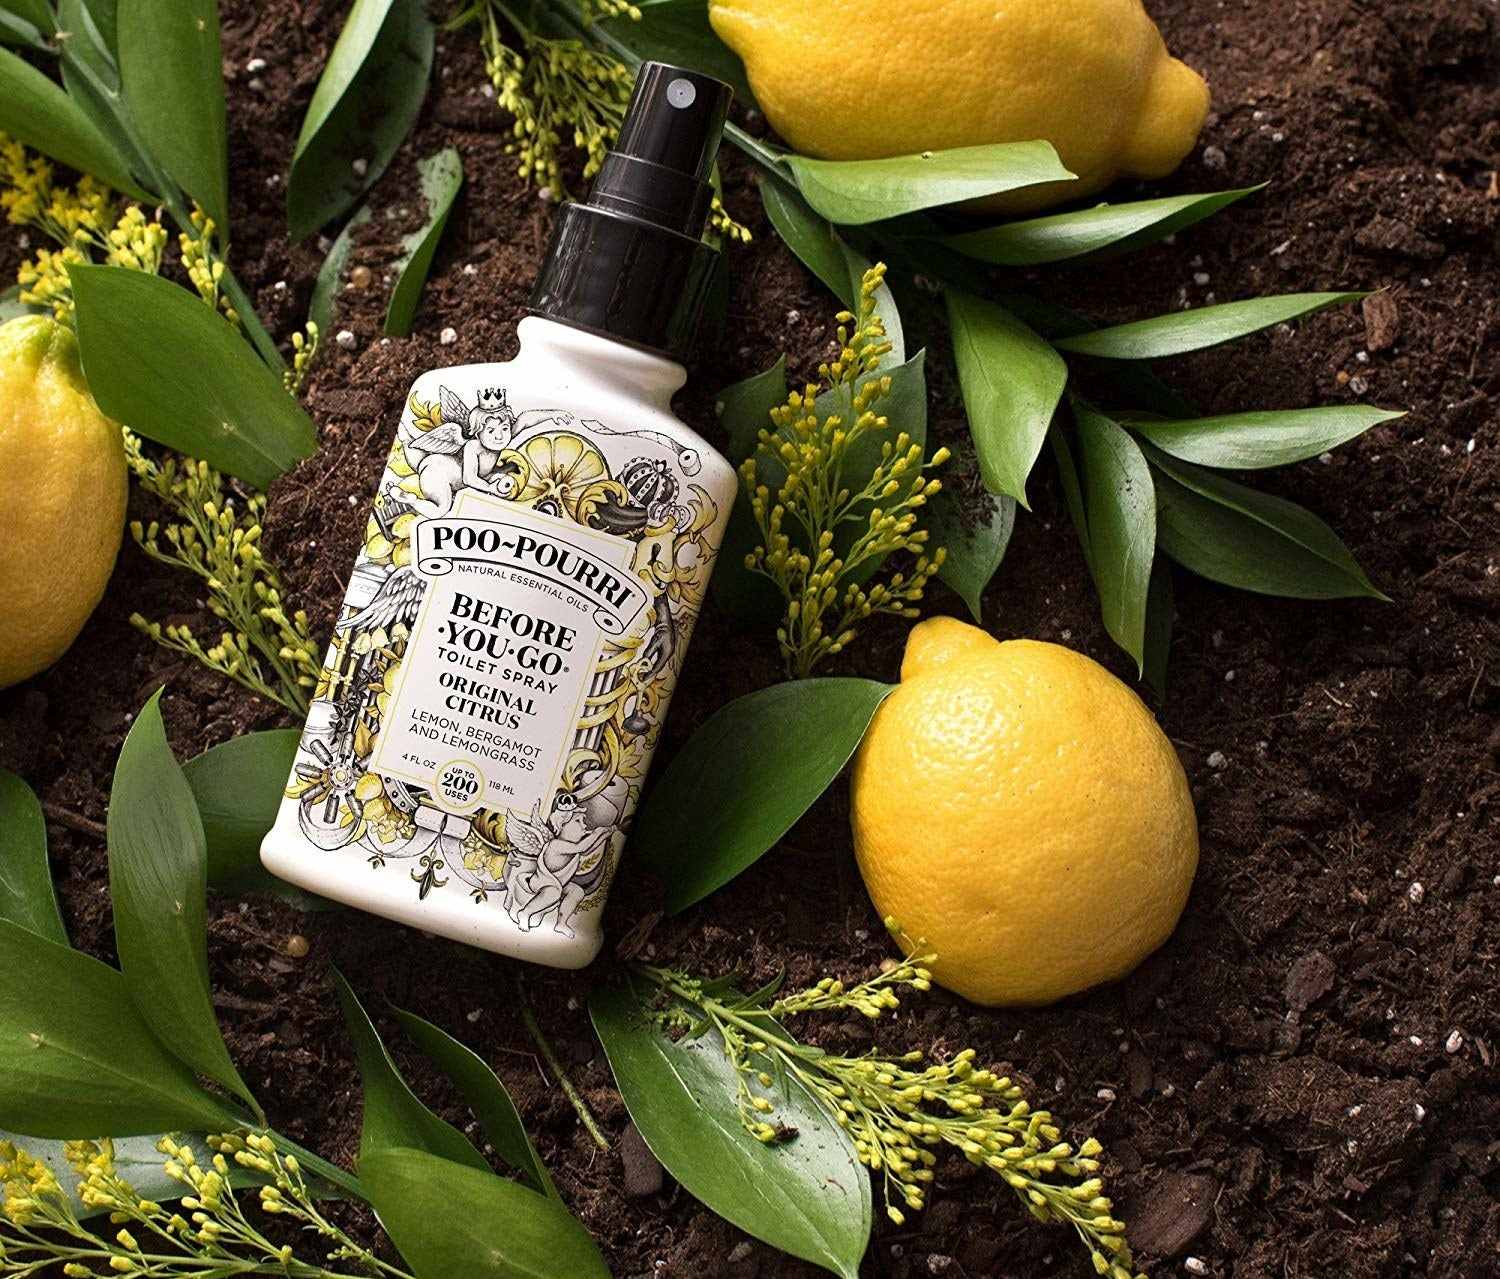 A small bottle of toilet spray laying on top of dirt with lemons artfully placed around it